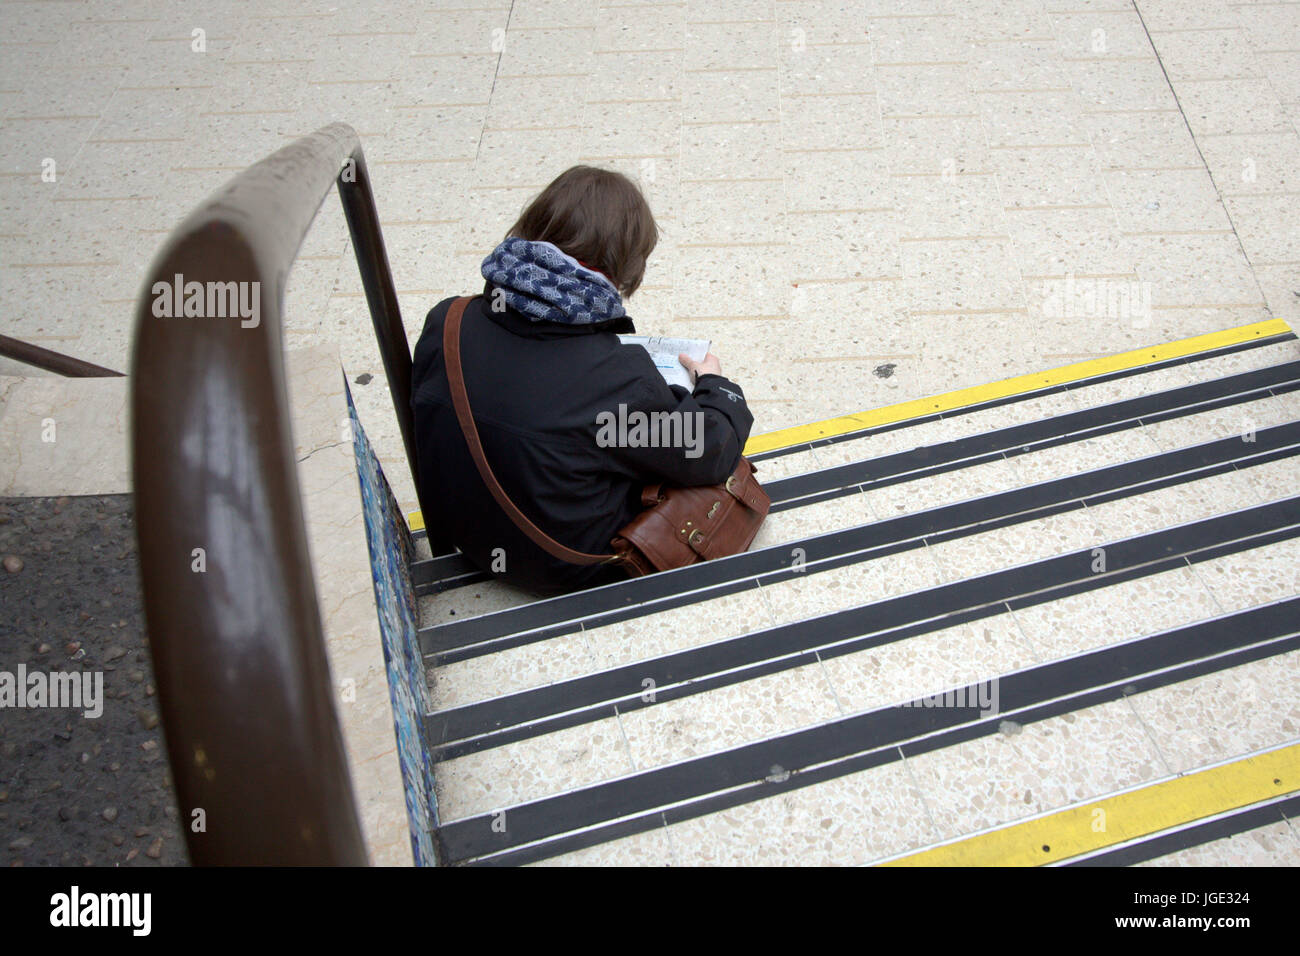 commuter passenger tourist sitting on a step viewed from behind - Stock Image